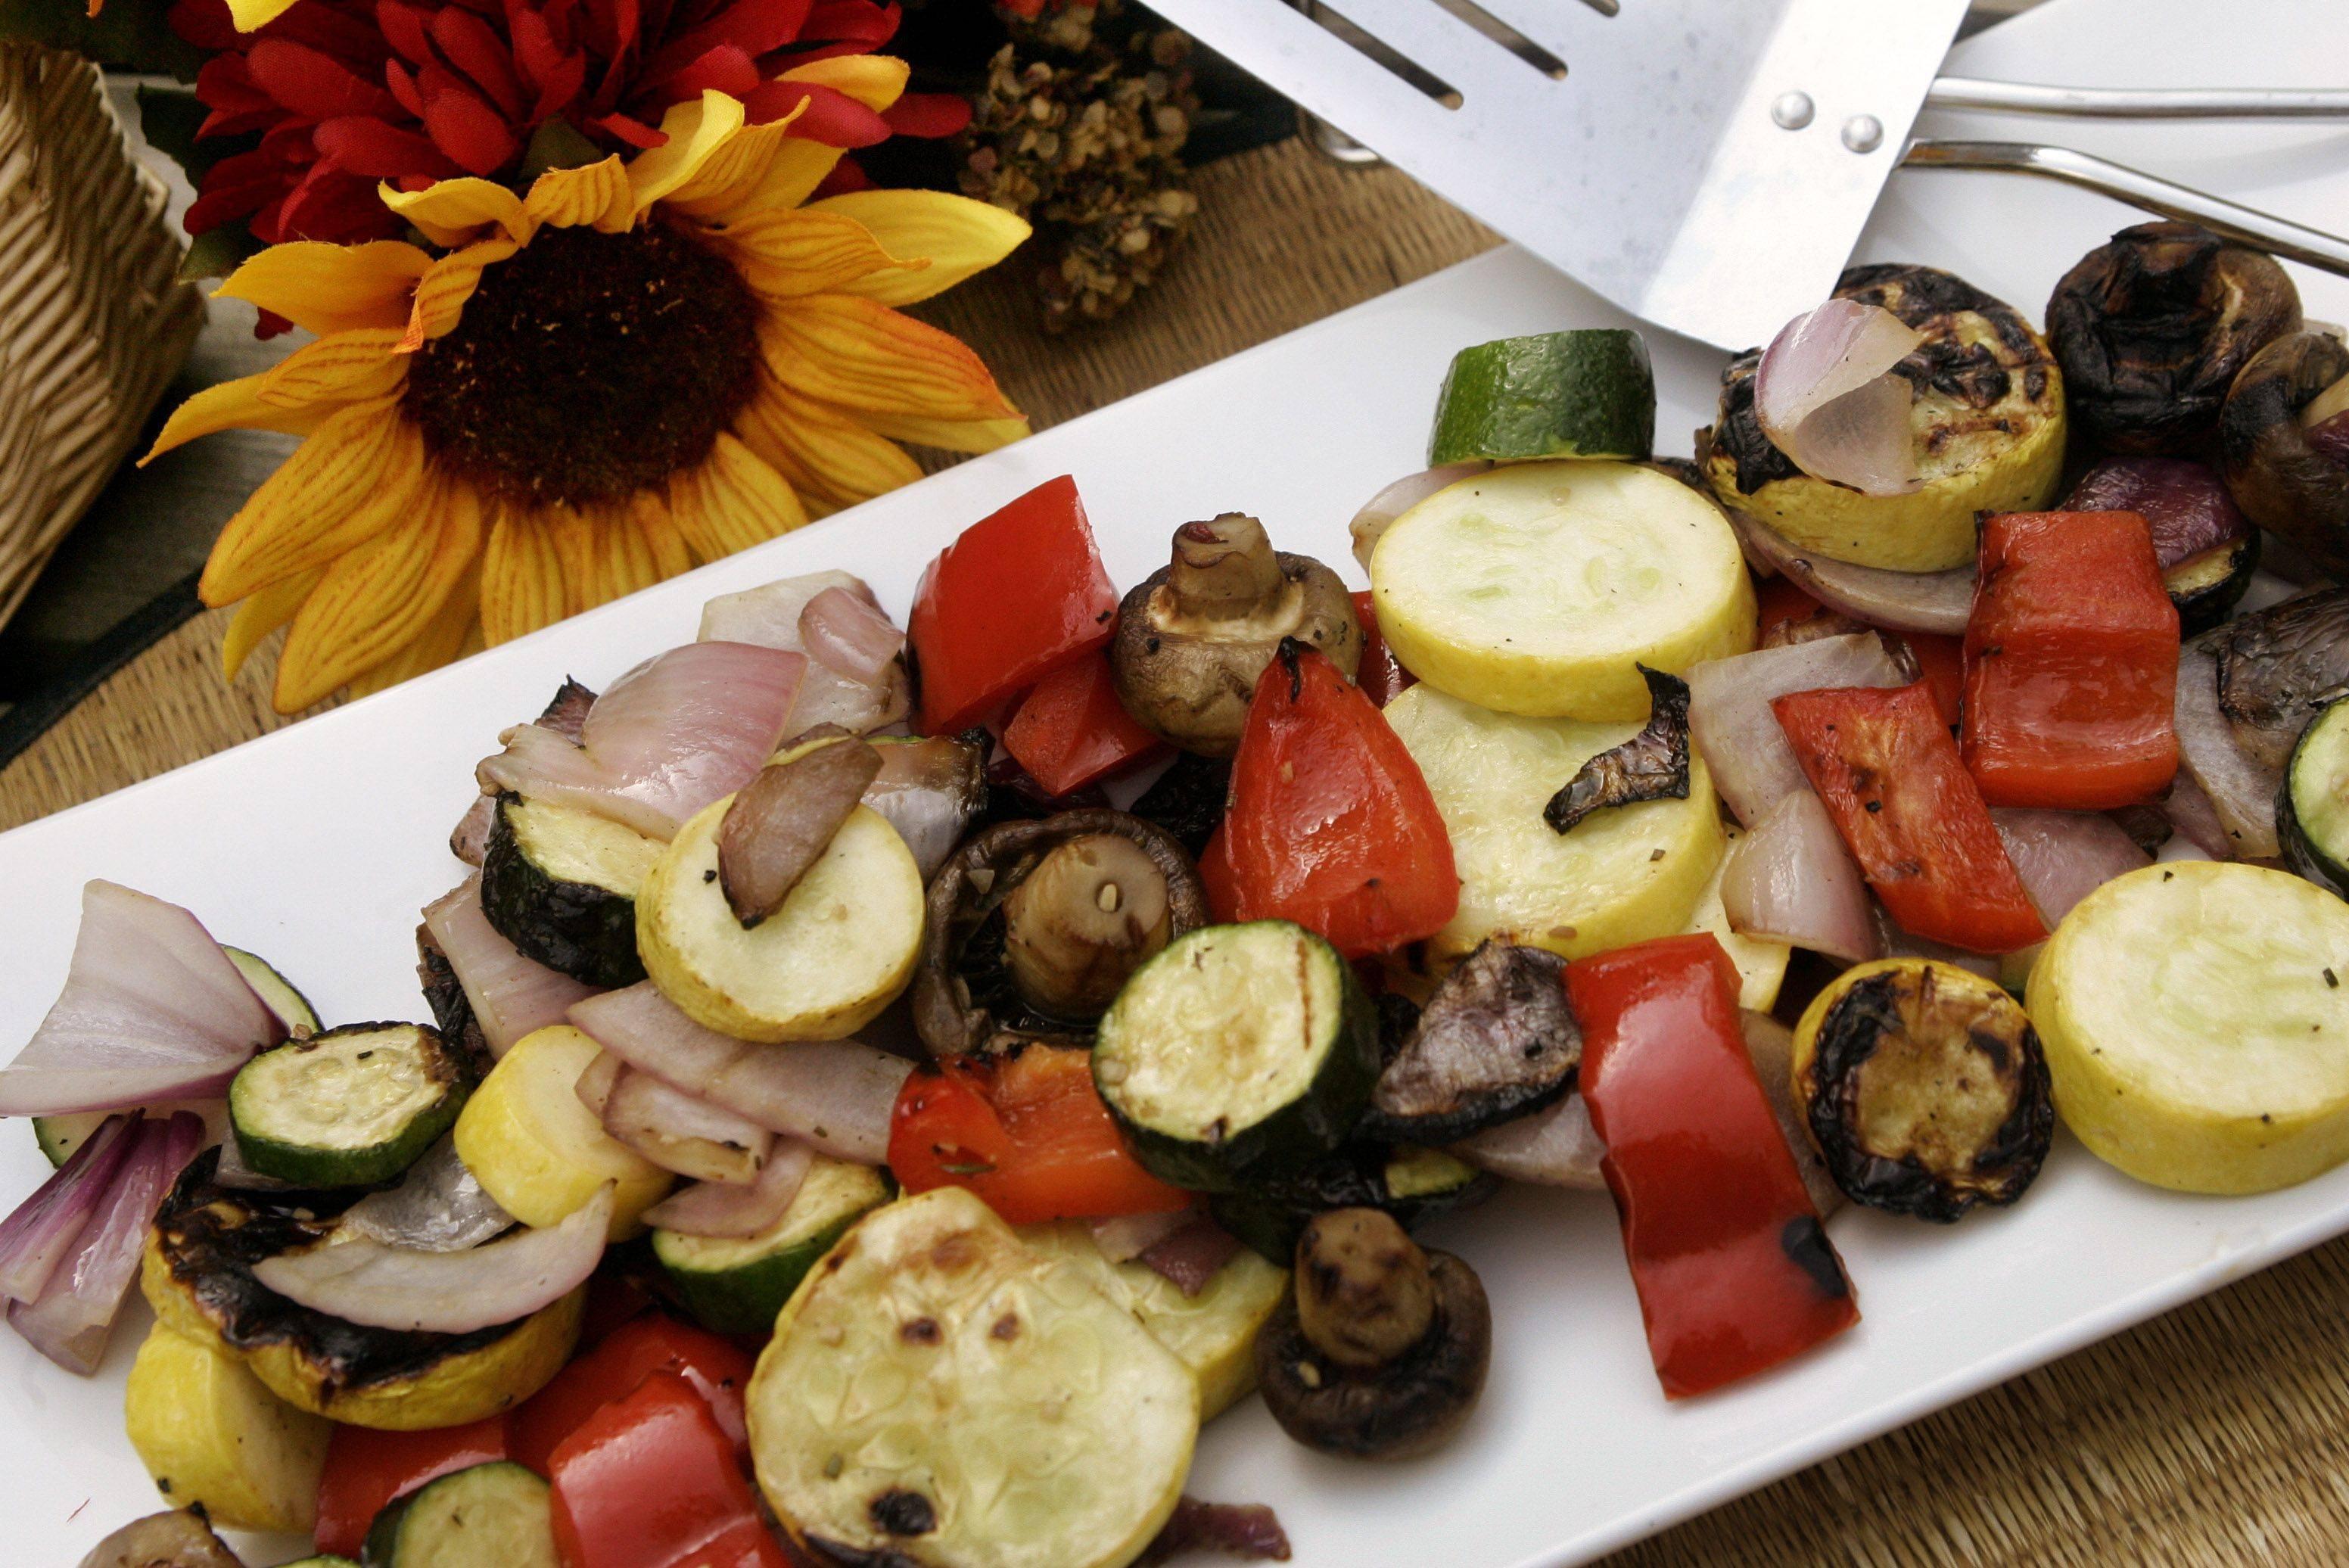 Gilbert R. Boucher II/gboucher@dailyherald.com ¬ Toby Smithson column - grilled vegetables ¬ ¬